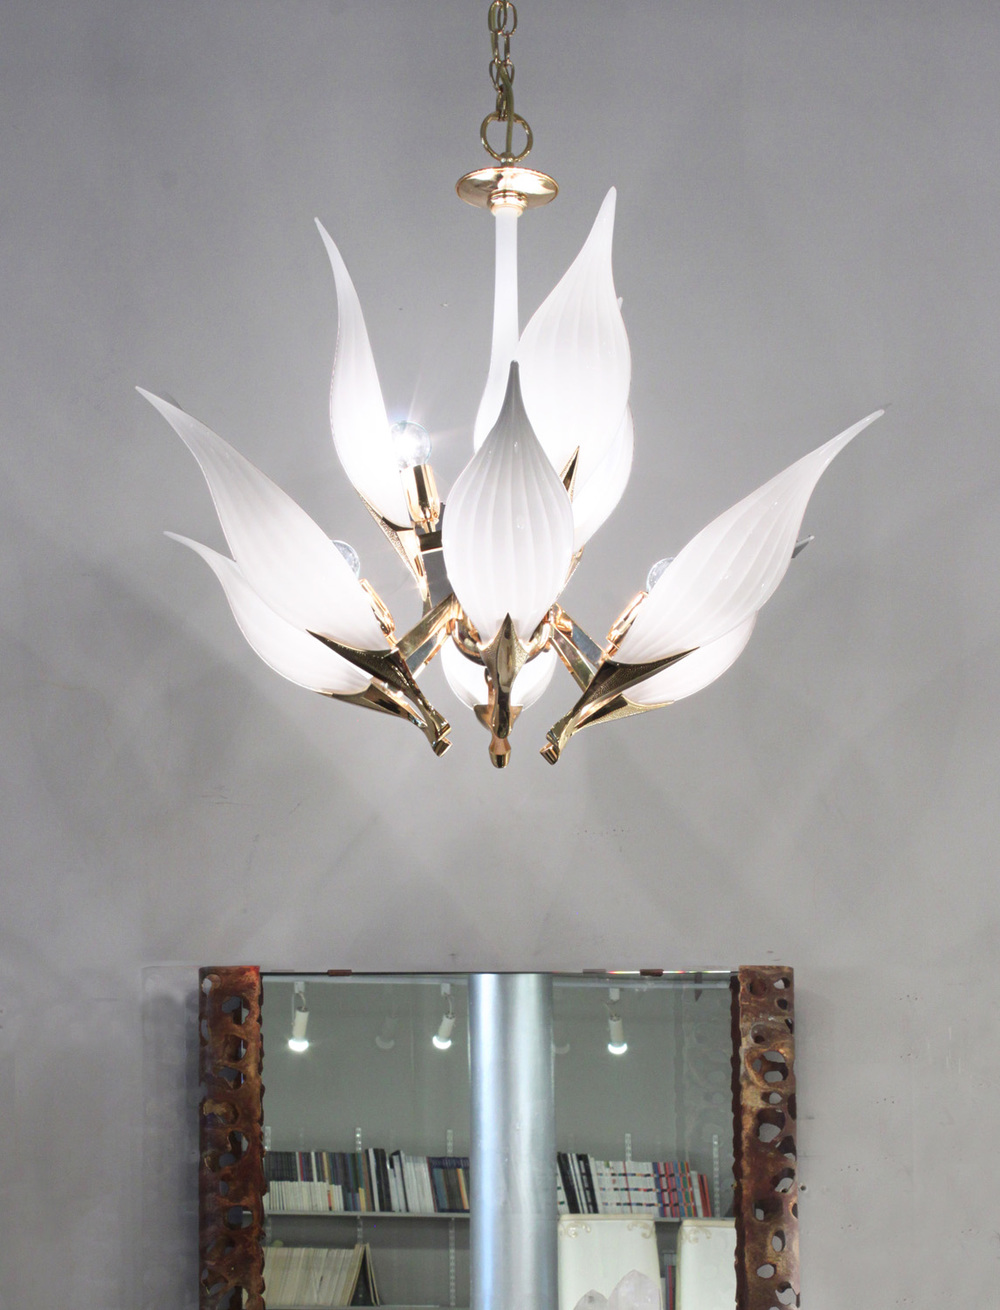 Franco 75 Luce 2tier petals+brass chandelier221 detail4 hires.jpg